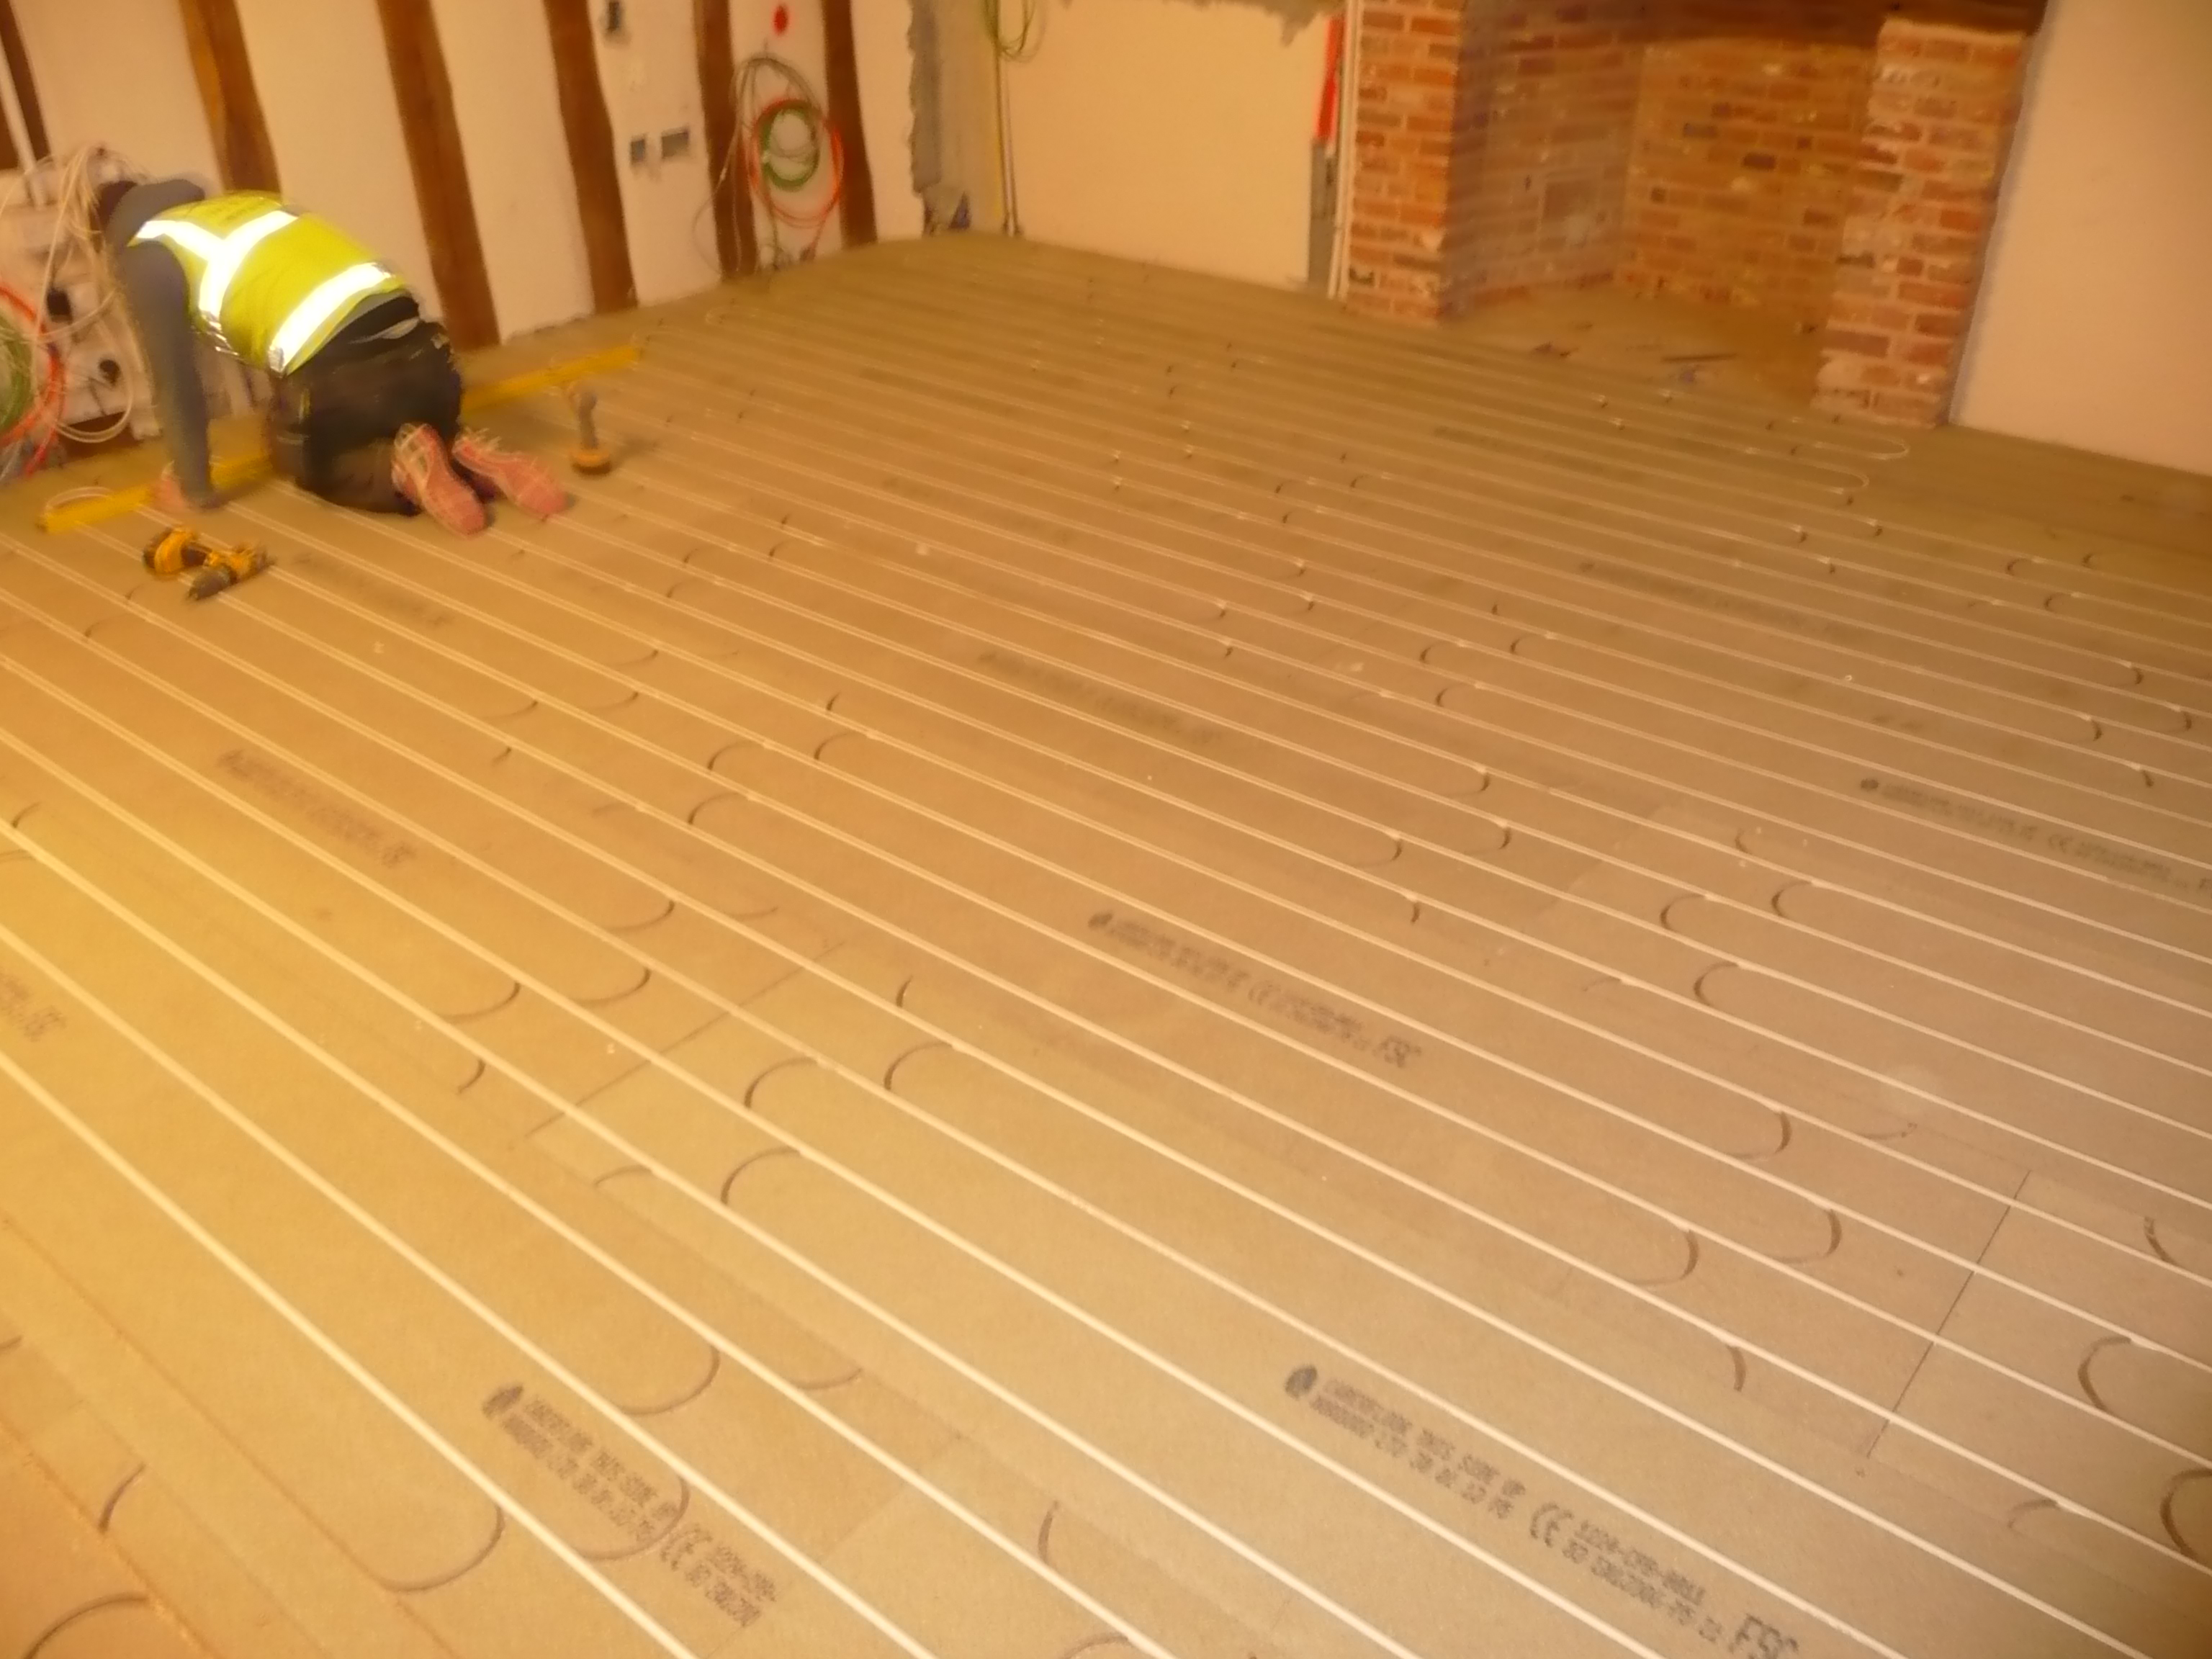 Underfloor Heating Systems For Suspended Wooden Floors